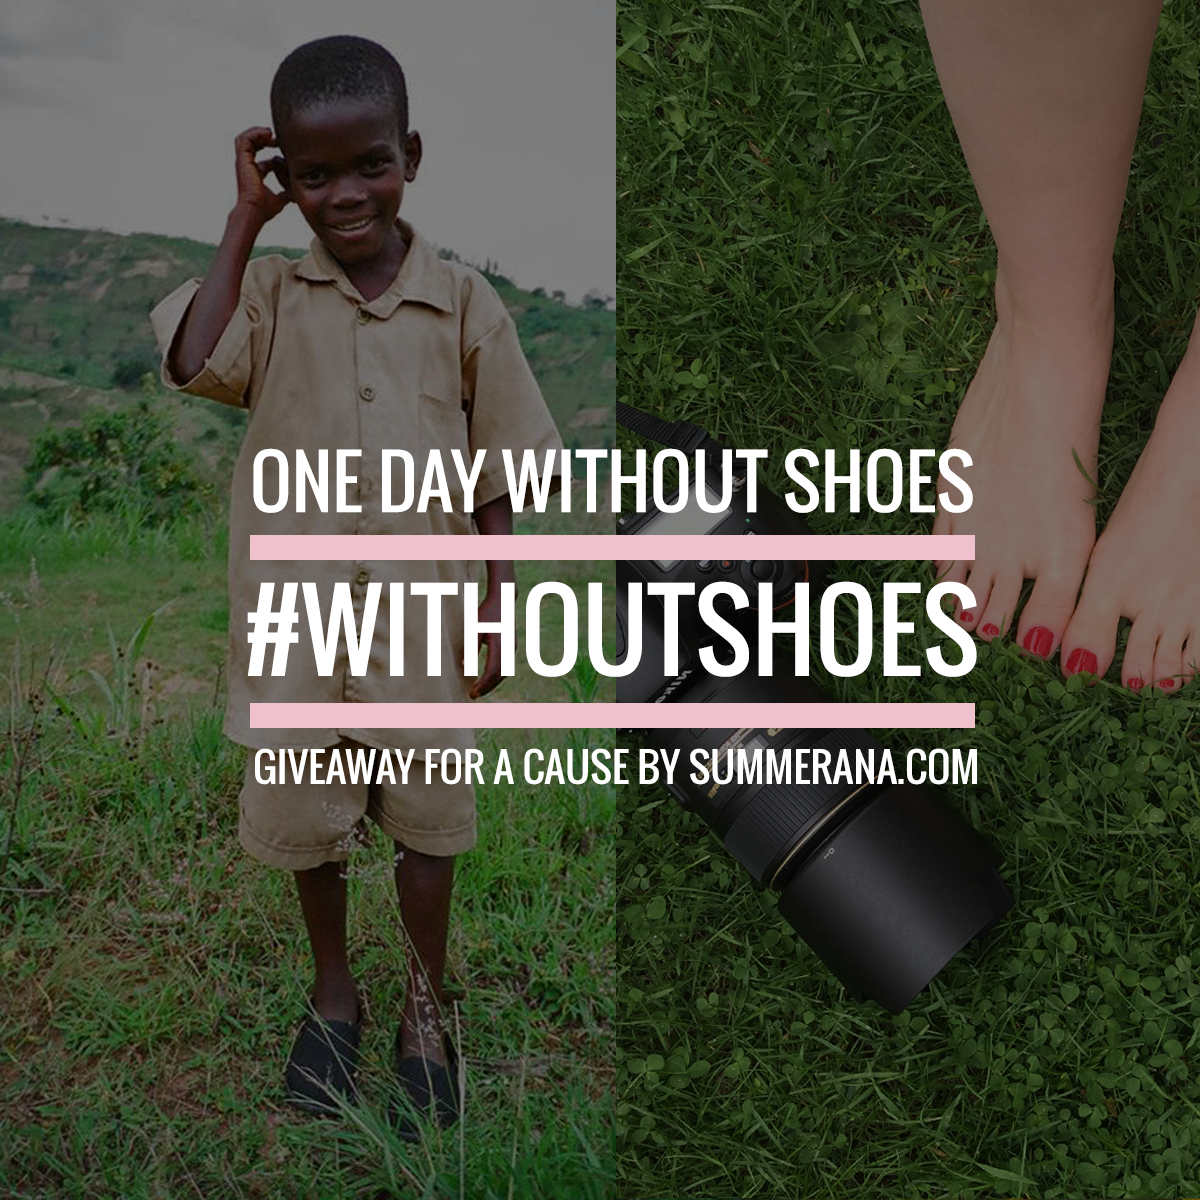 toms shoe giveaway onedaywithoutshoes giveaway for a cause summerana 3041